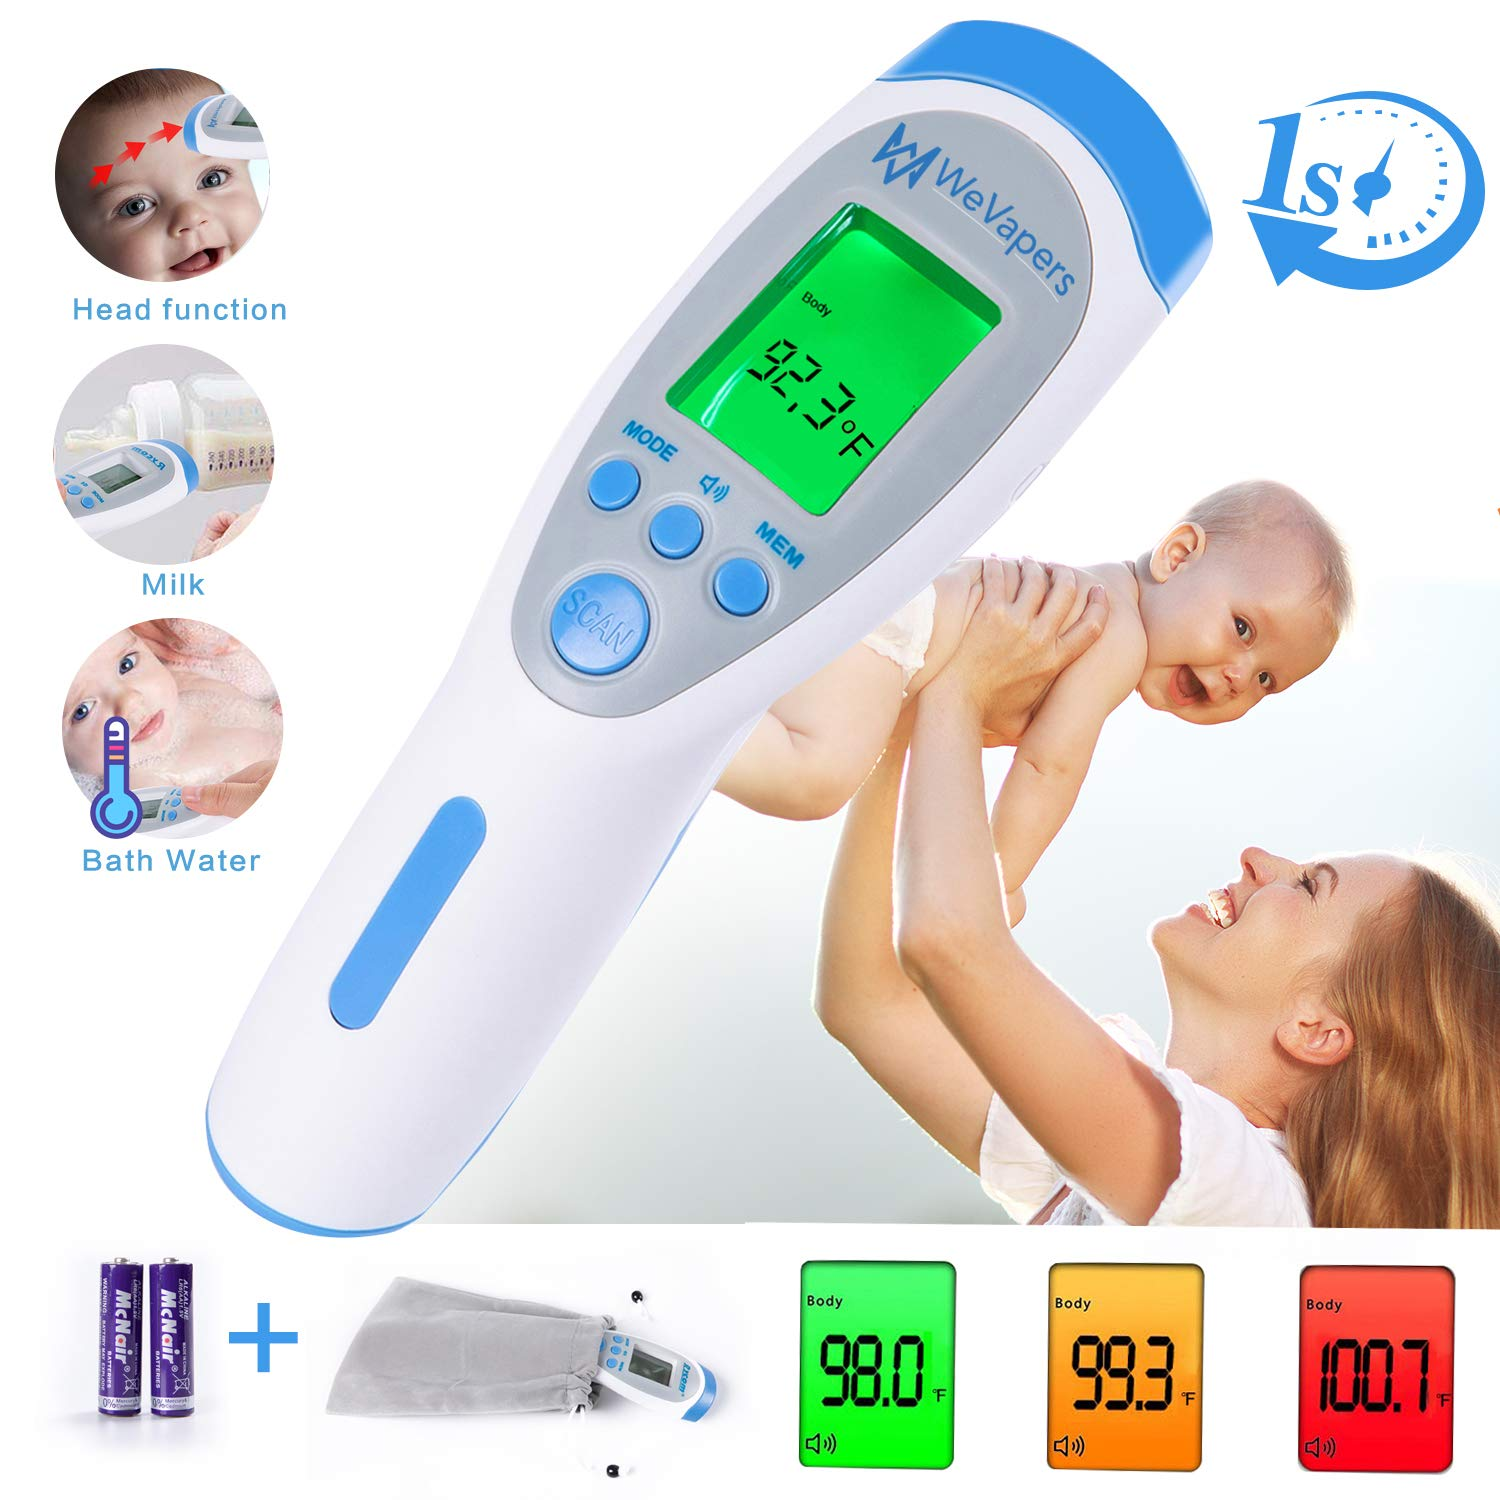 Forehead Thermometer, Digital Thermometer Non Contact Medical Infrared Thermometer for Fever, 3 Modes Body/Surface/Room…